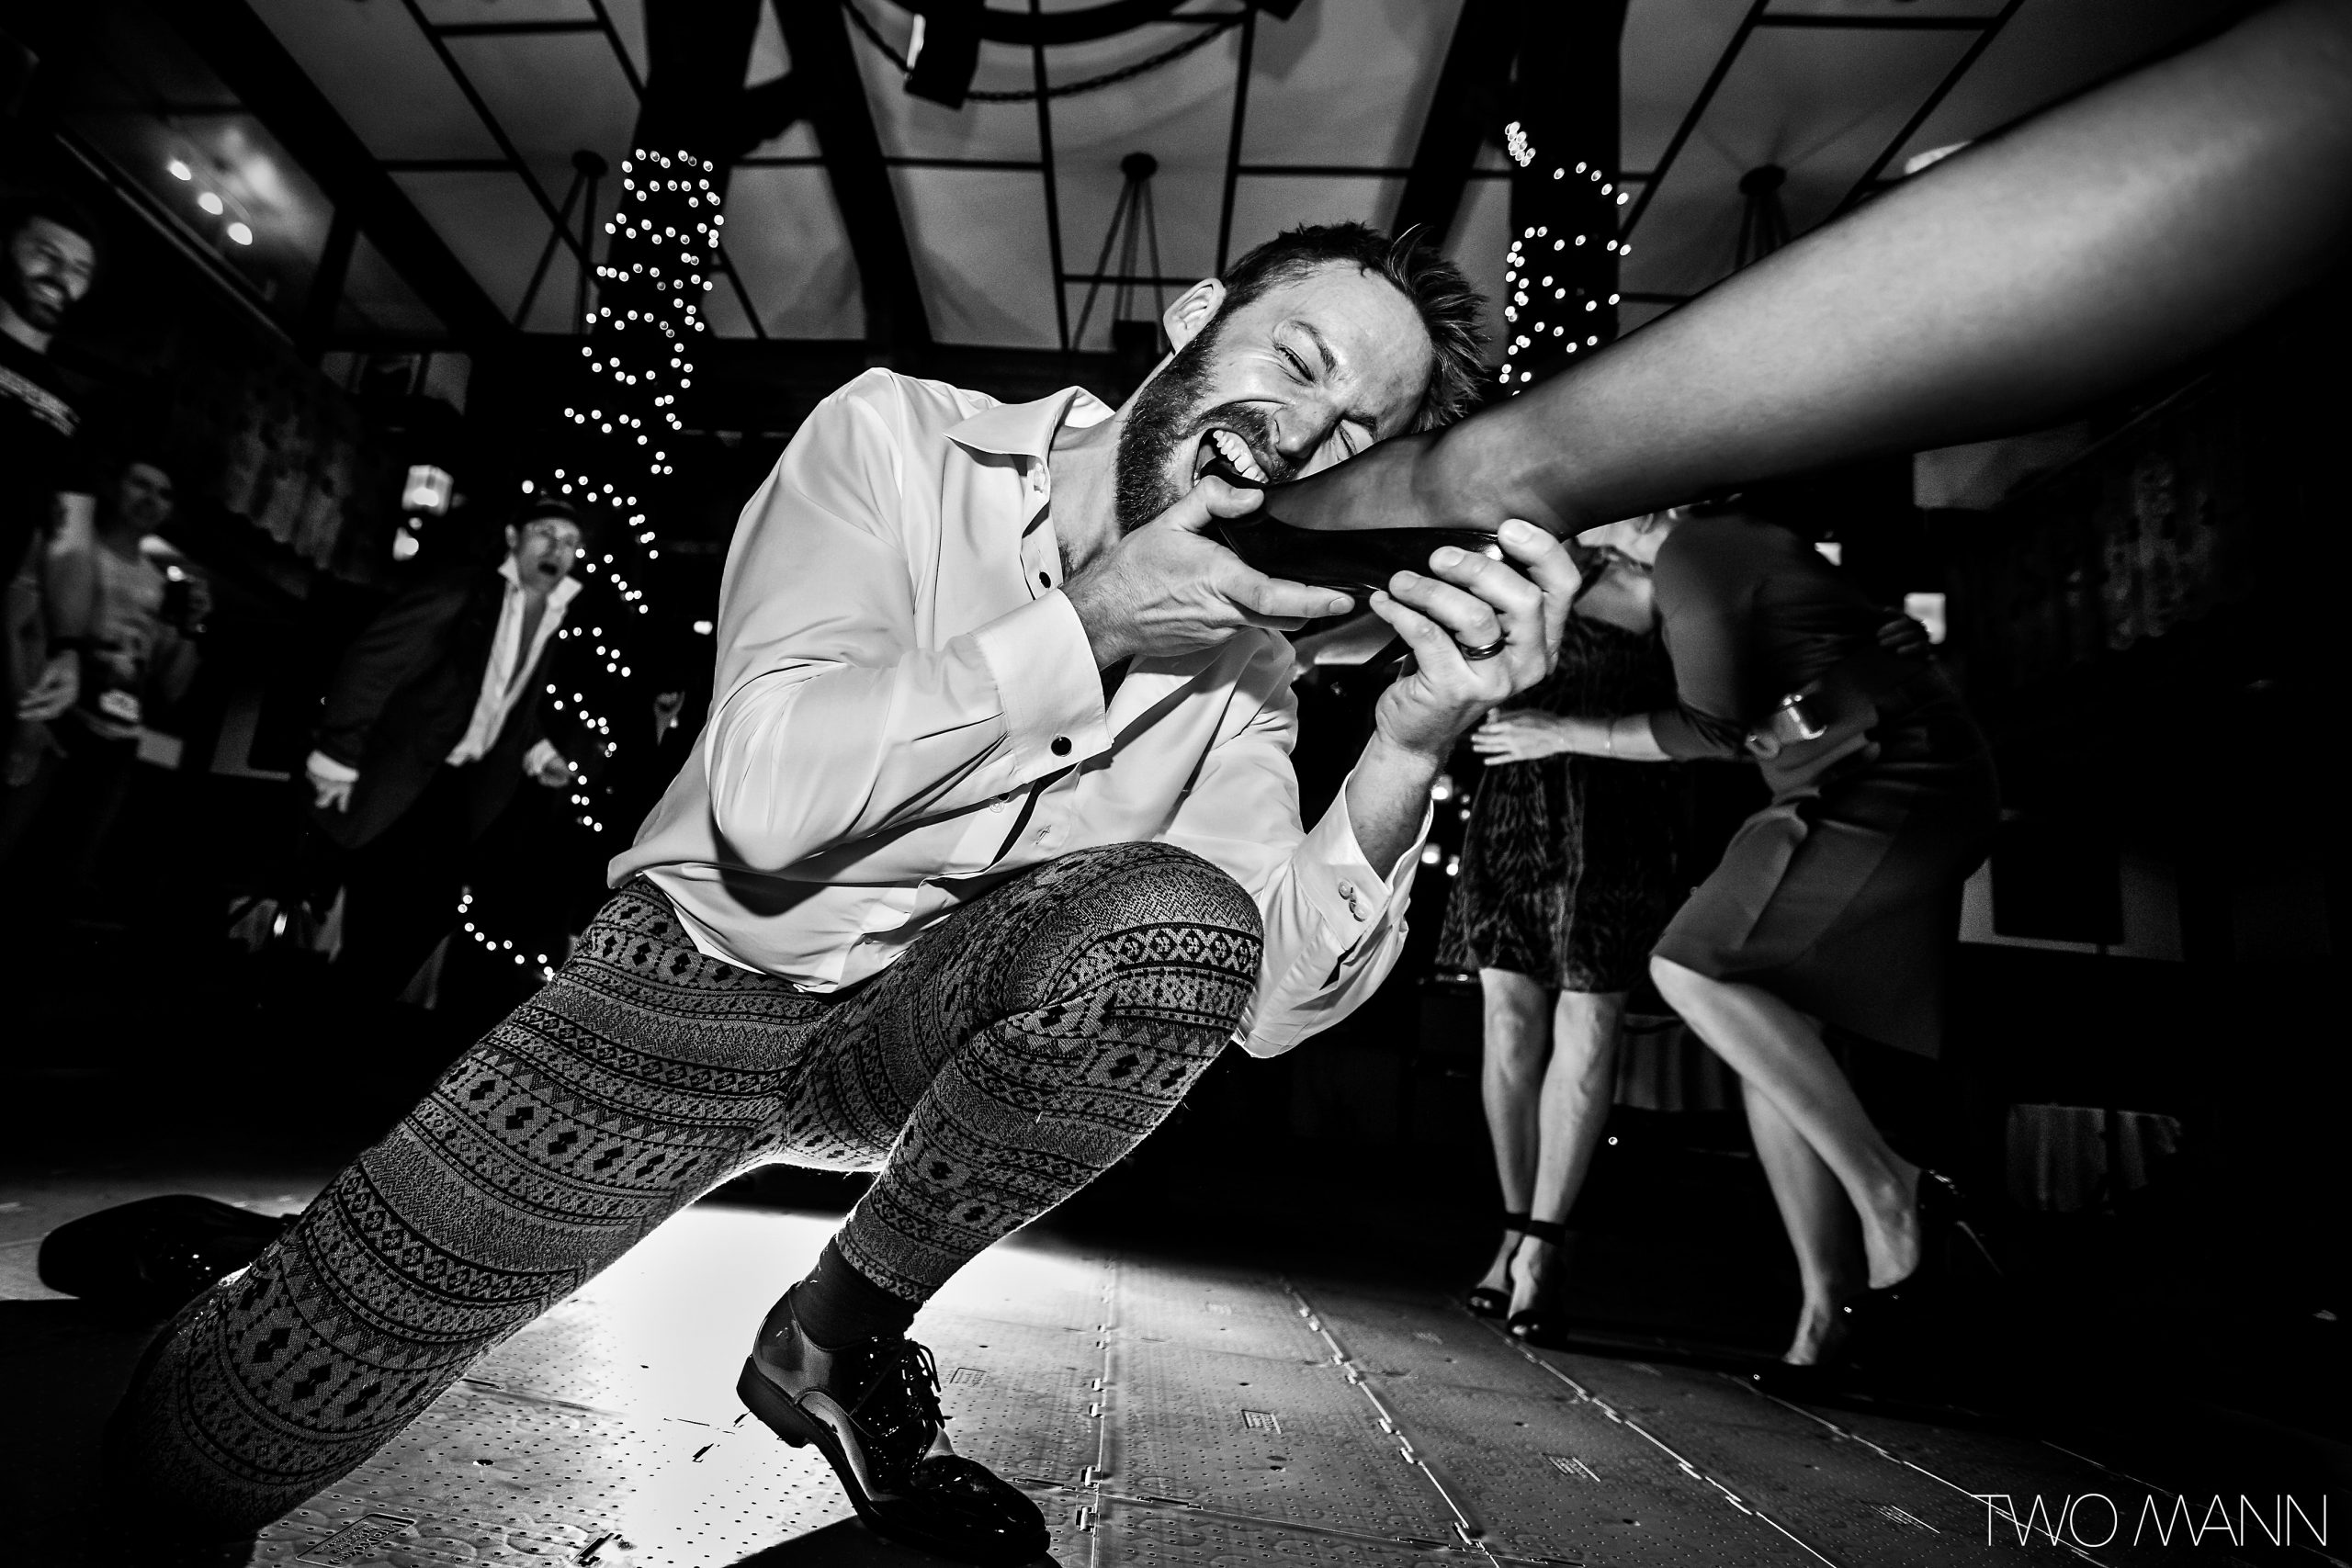 a groom kneeling down to take bride's foot in a dance move